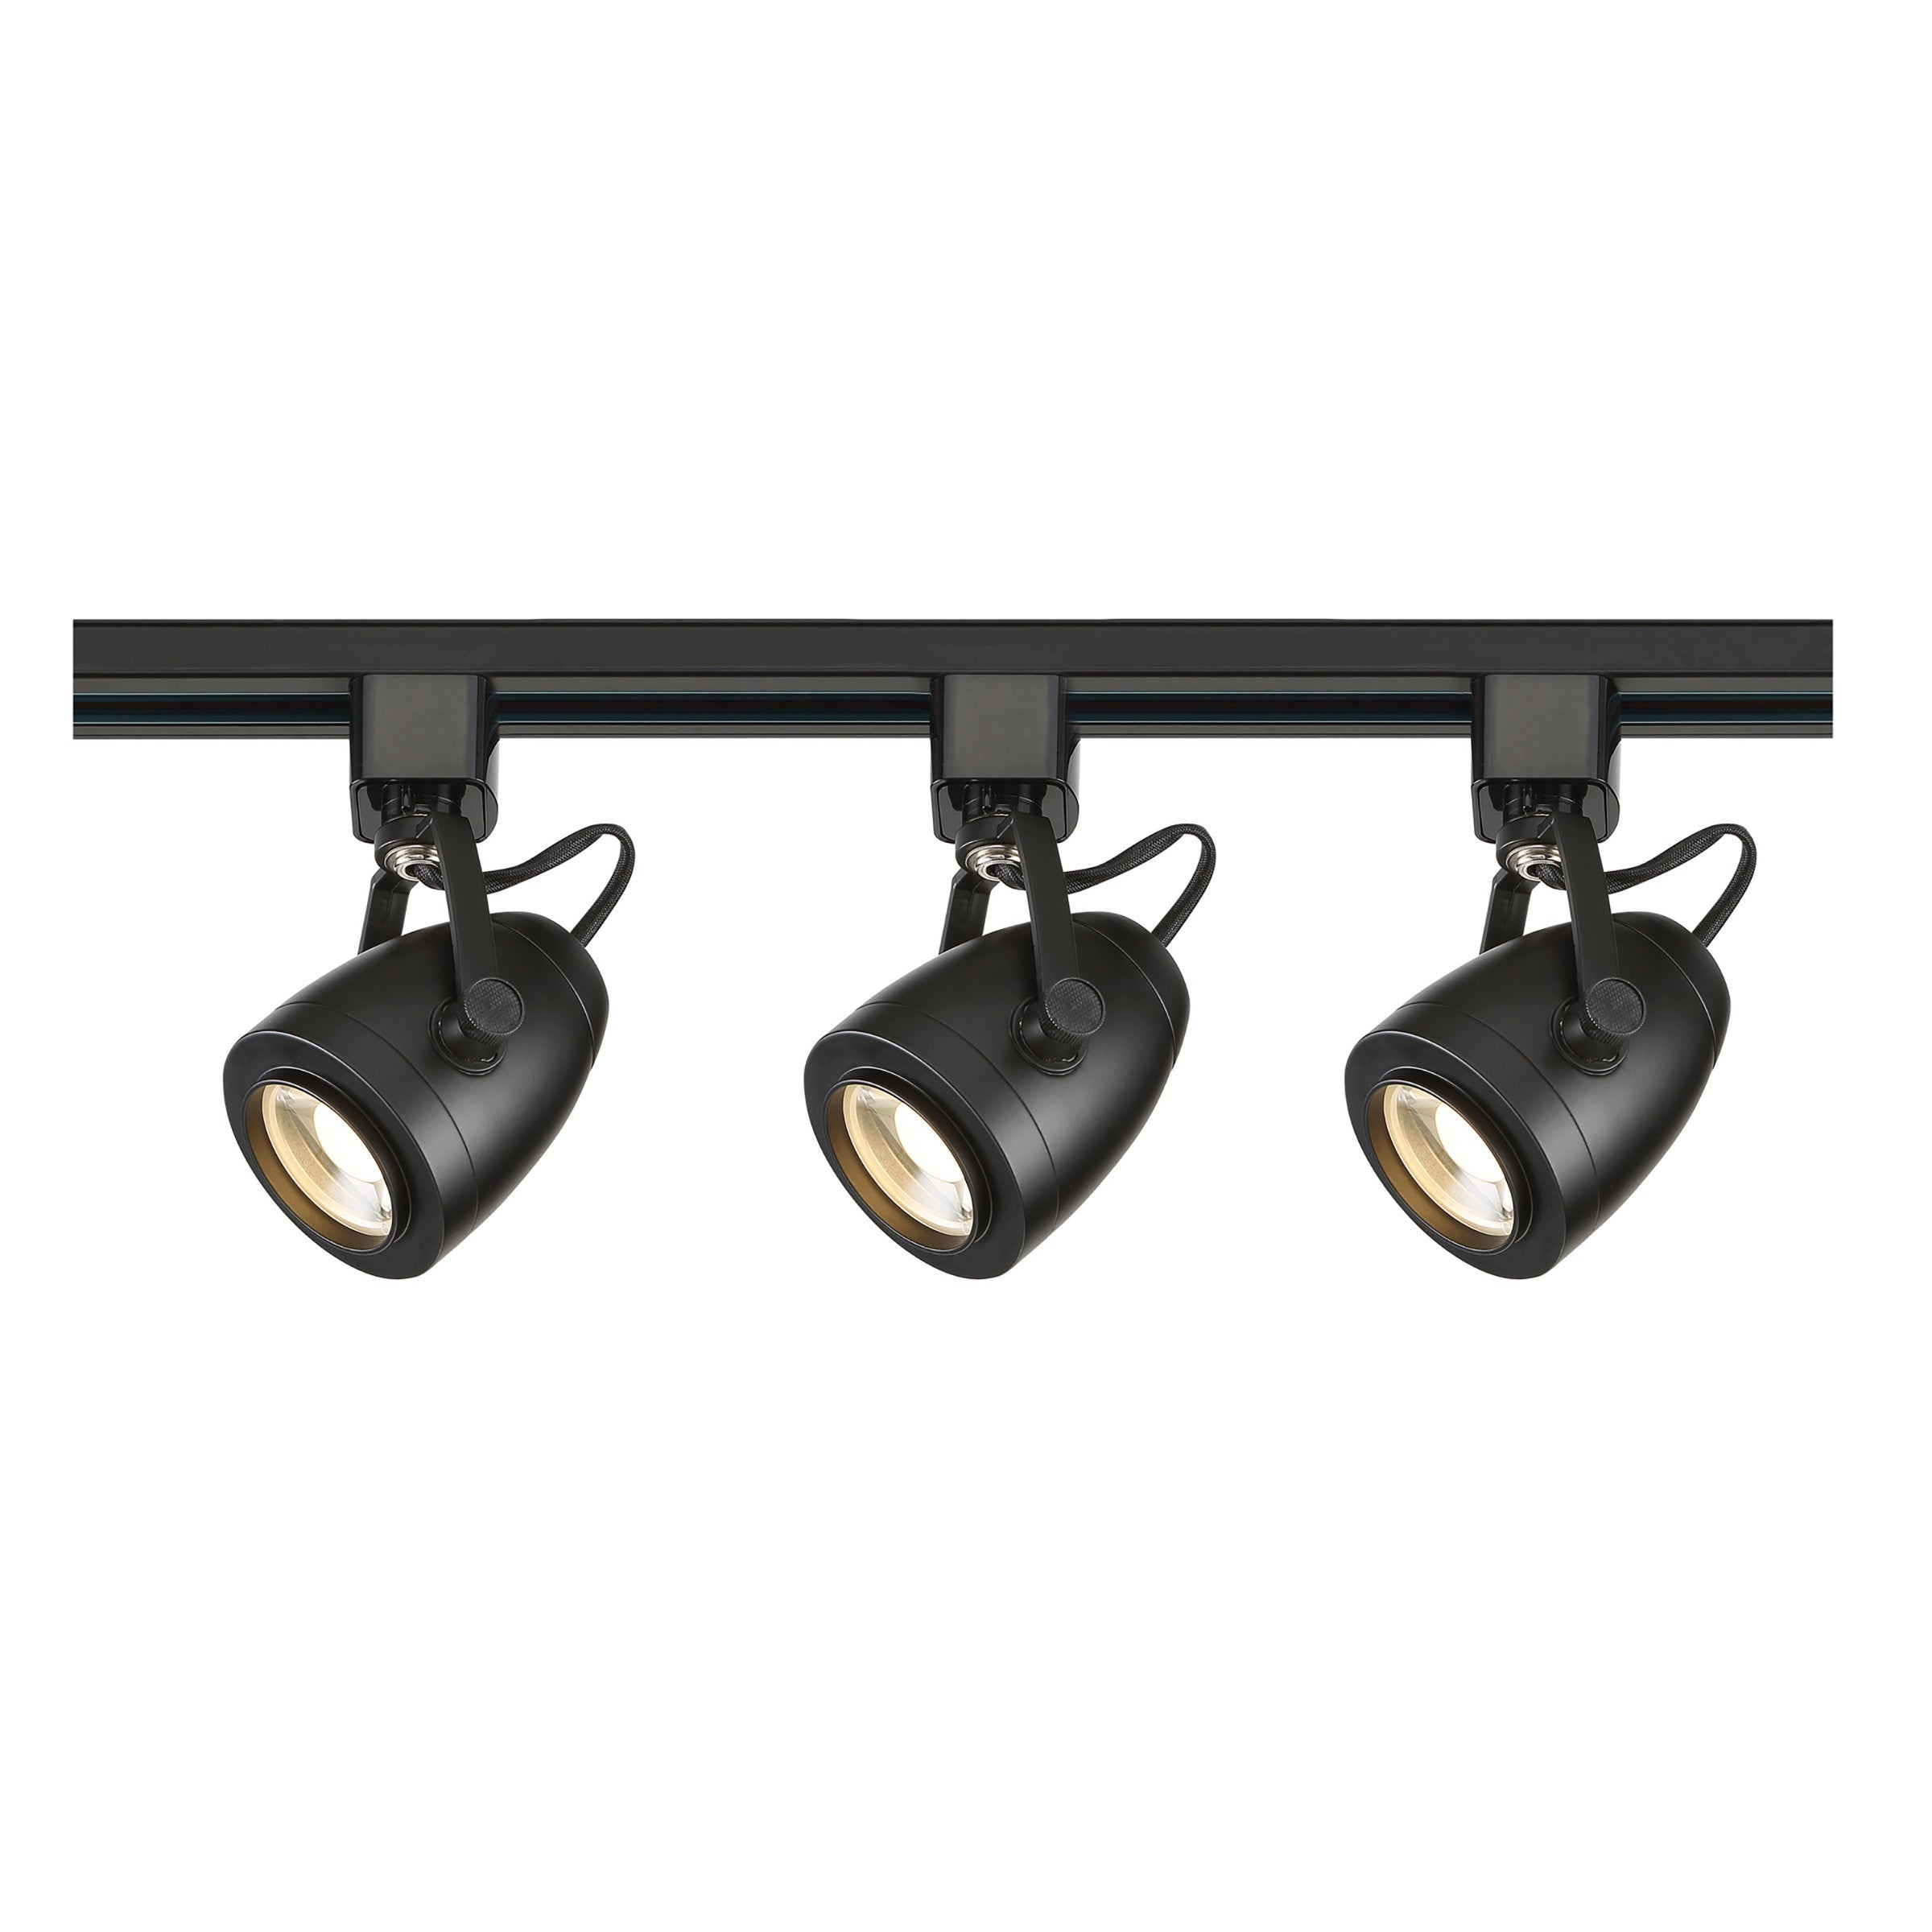 home free pendant black varaluz overstock gymnast light ceiling product today shipping garden ceilings